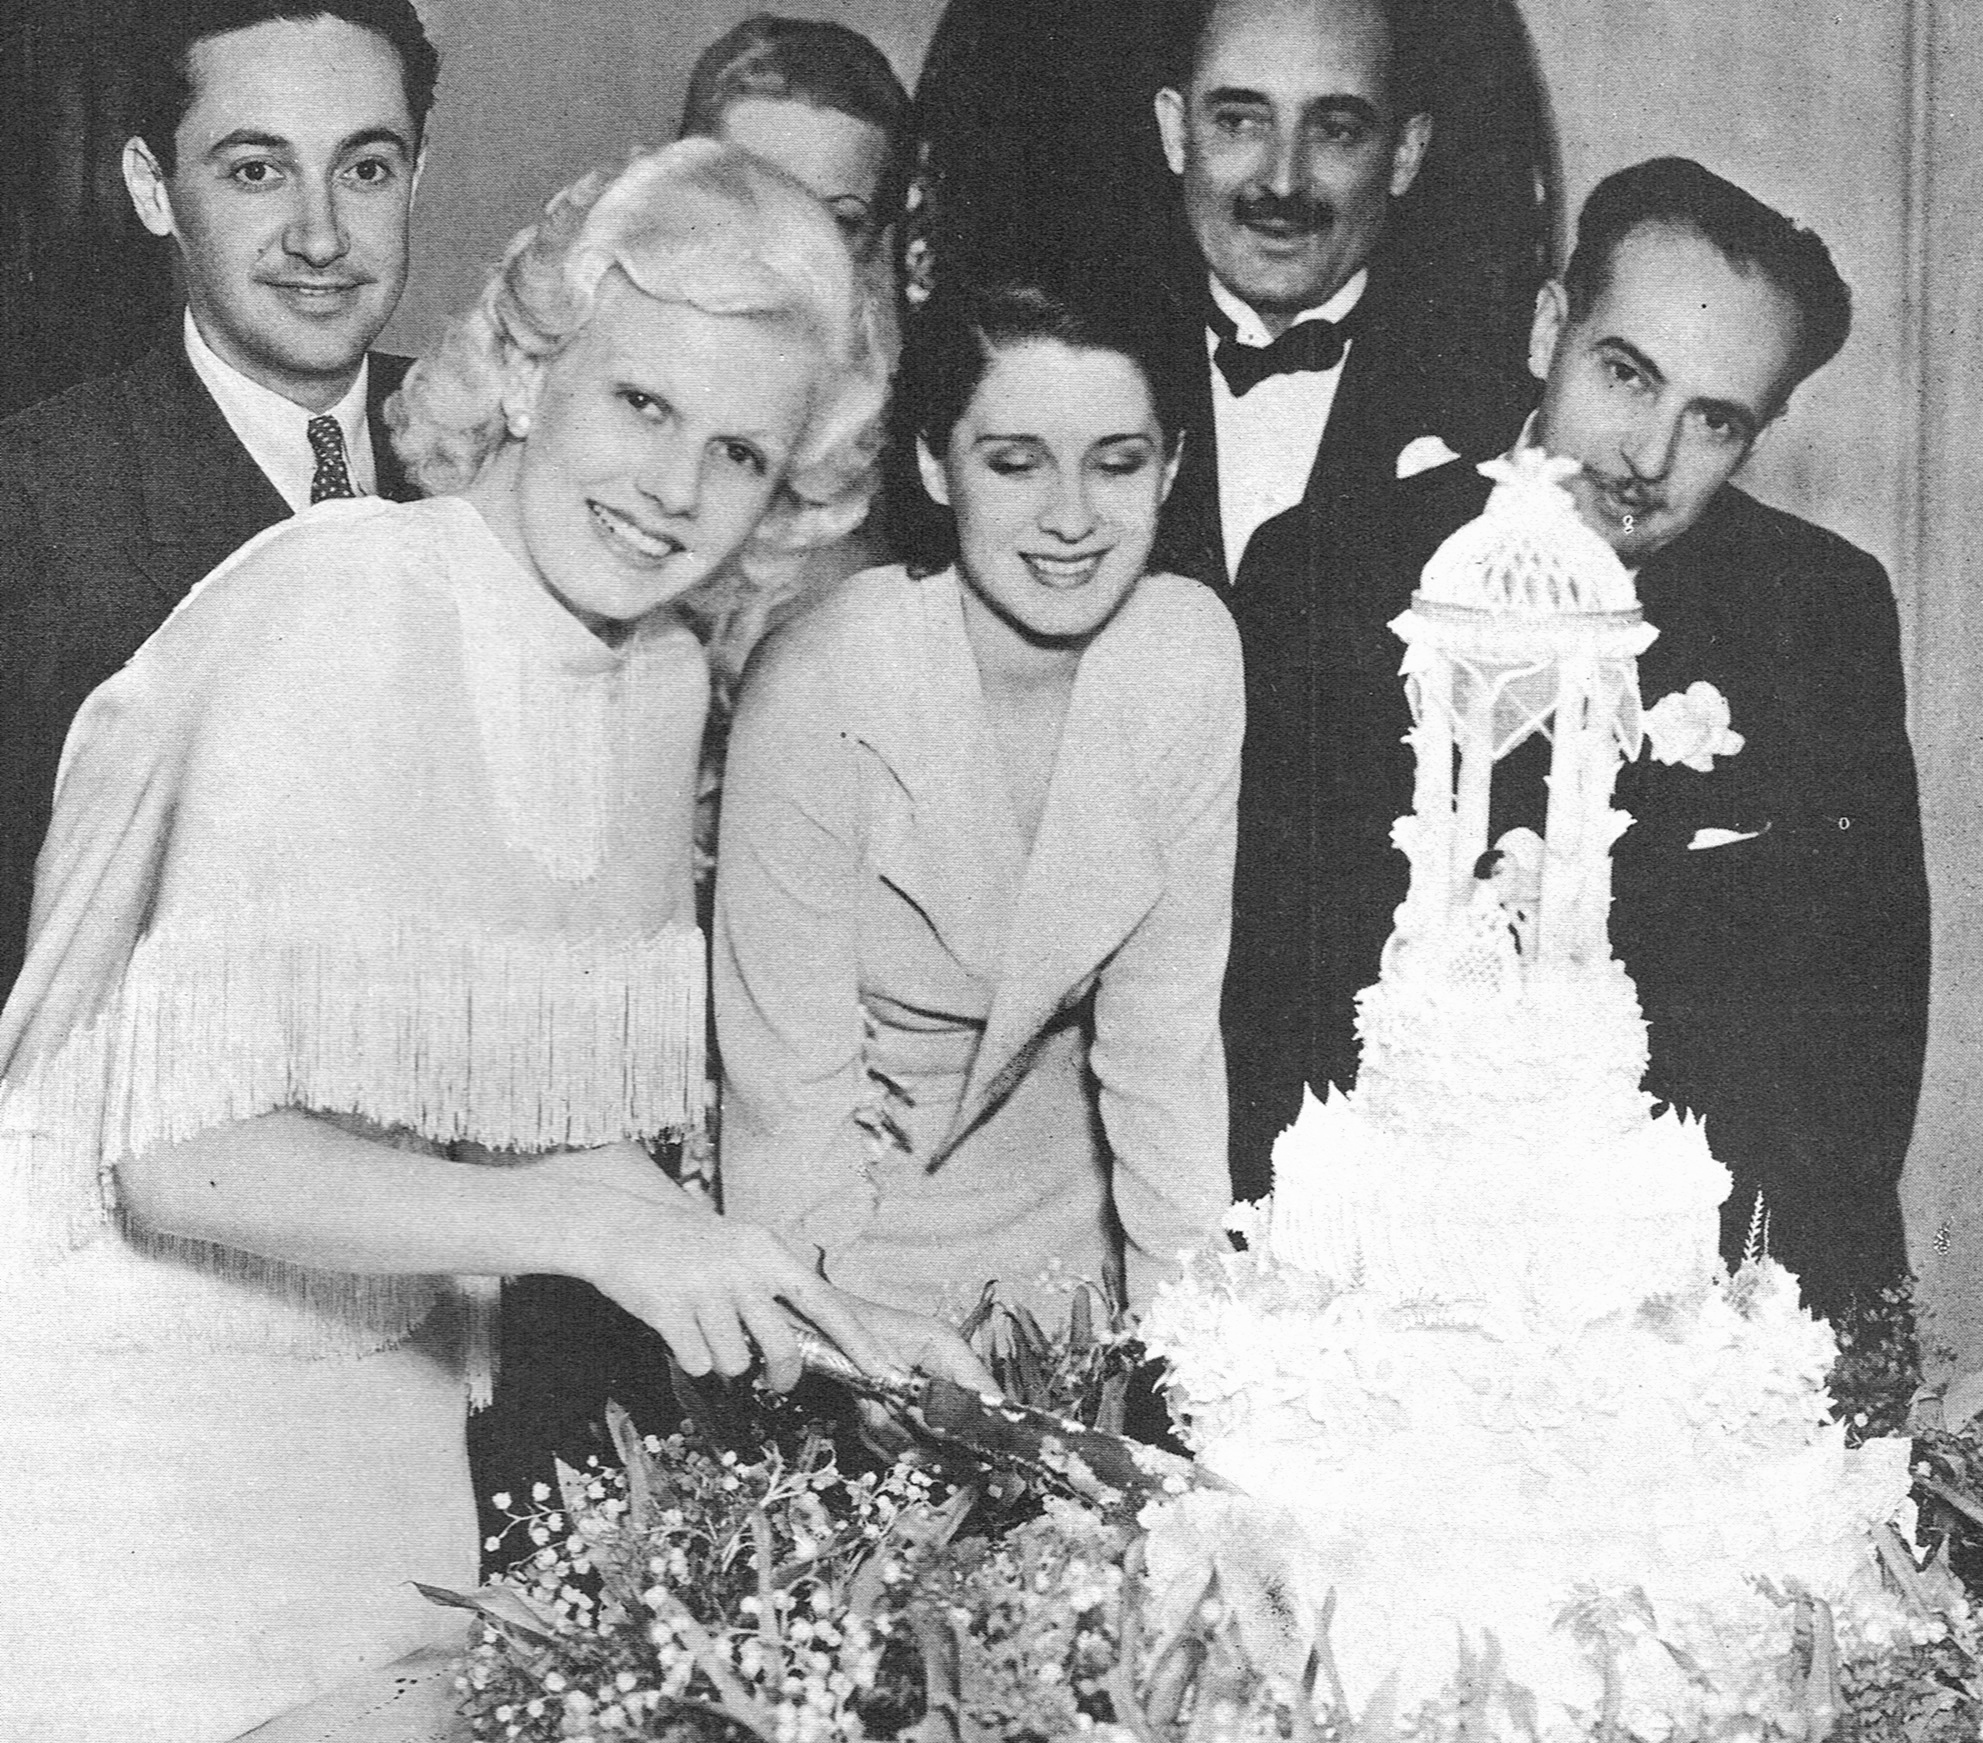 Jean Harlow and Paul Bern's wedding reception